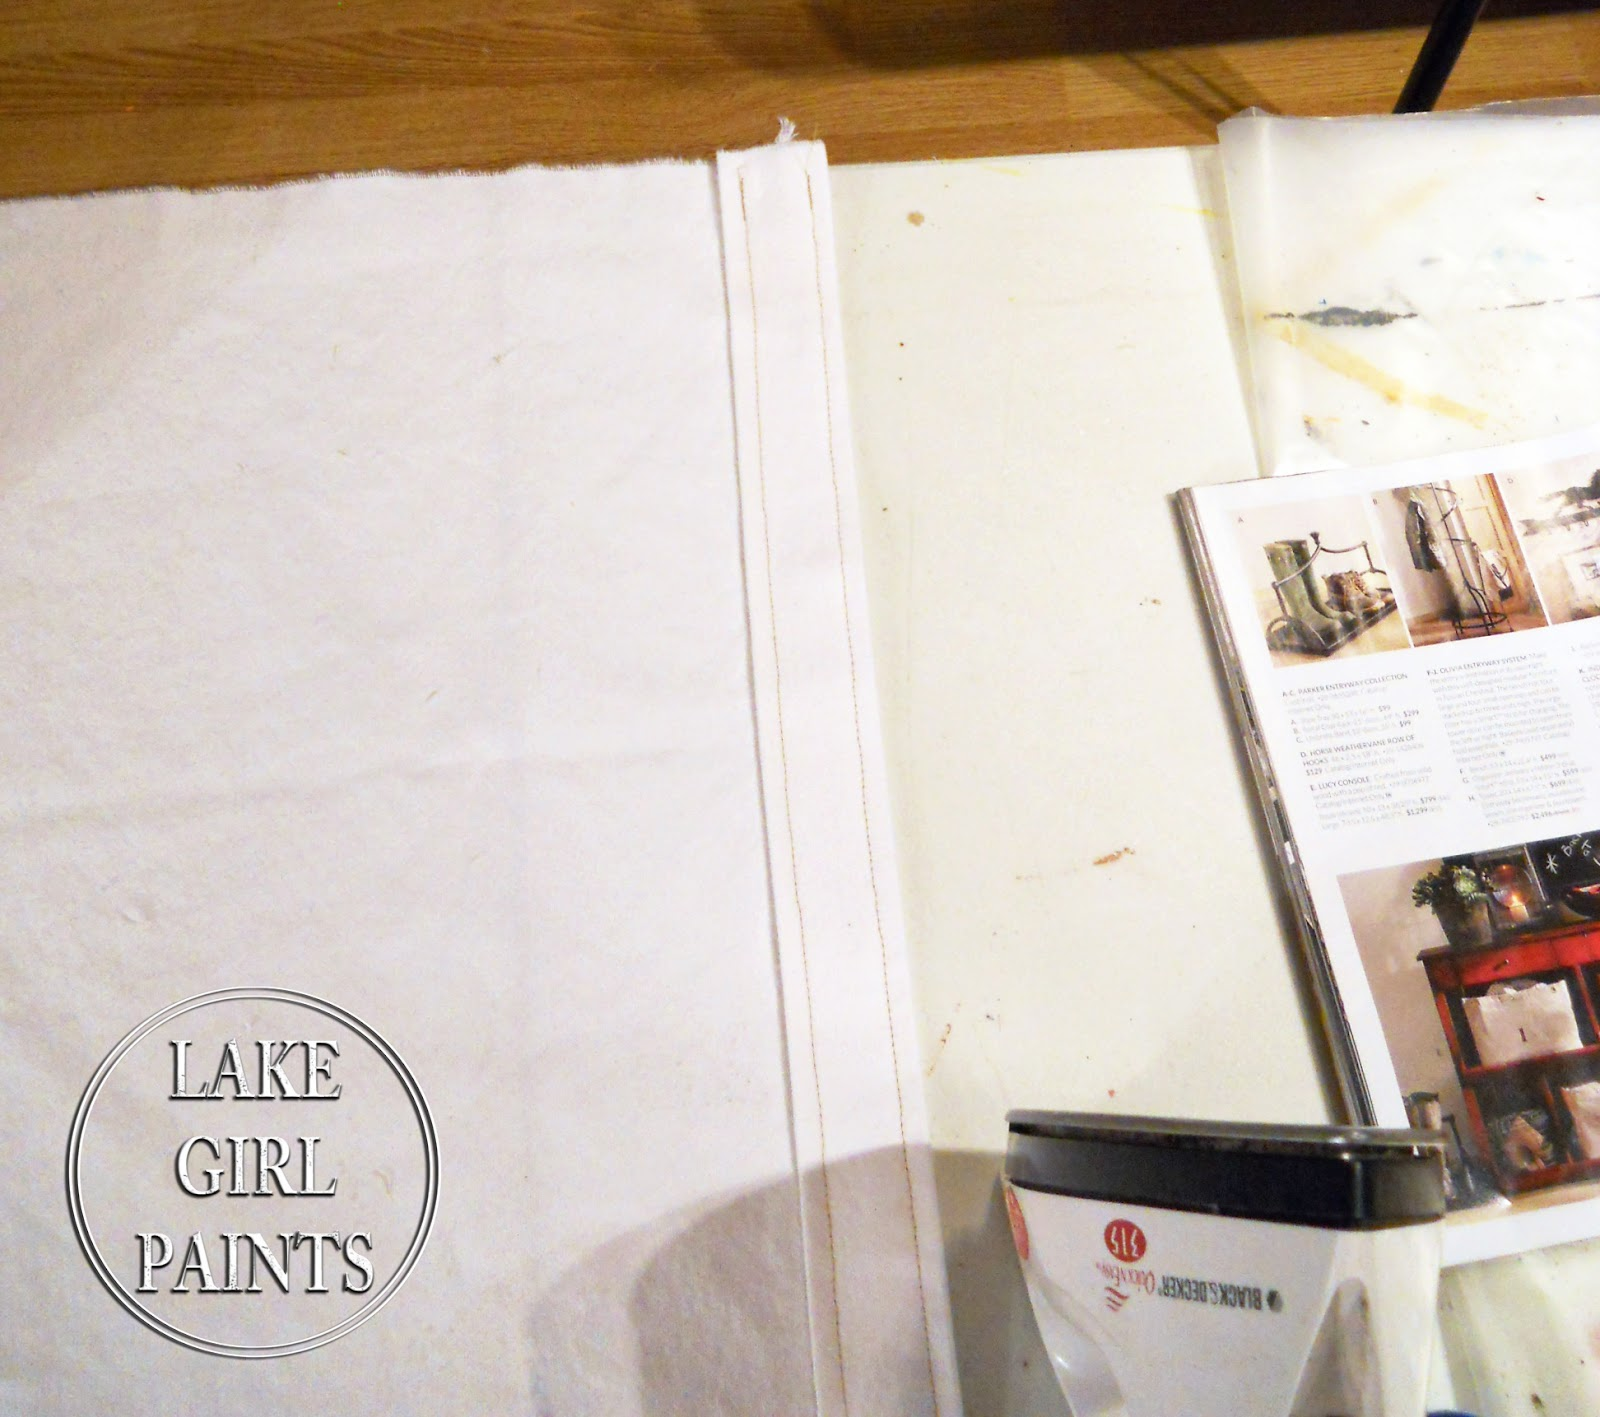 Lake Girl Paints My Pottery Barn Look On A Budget